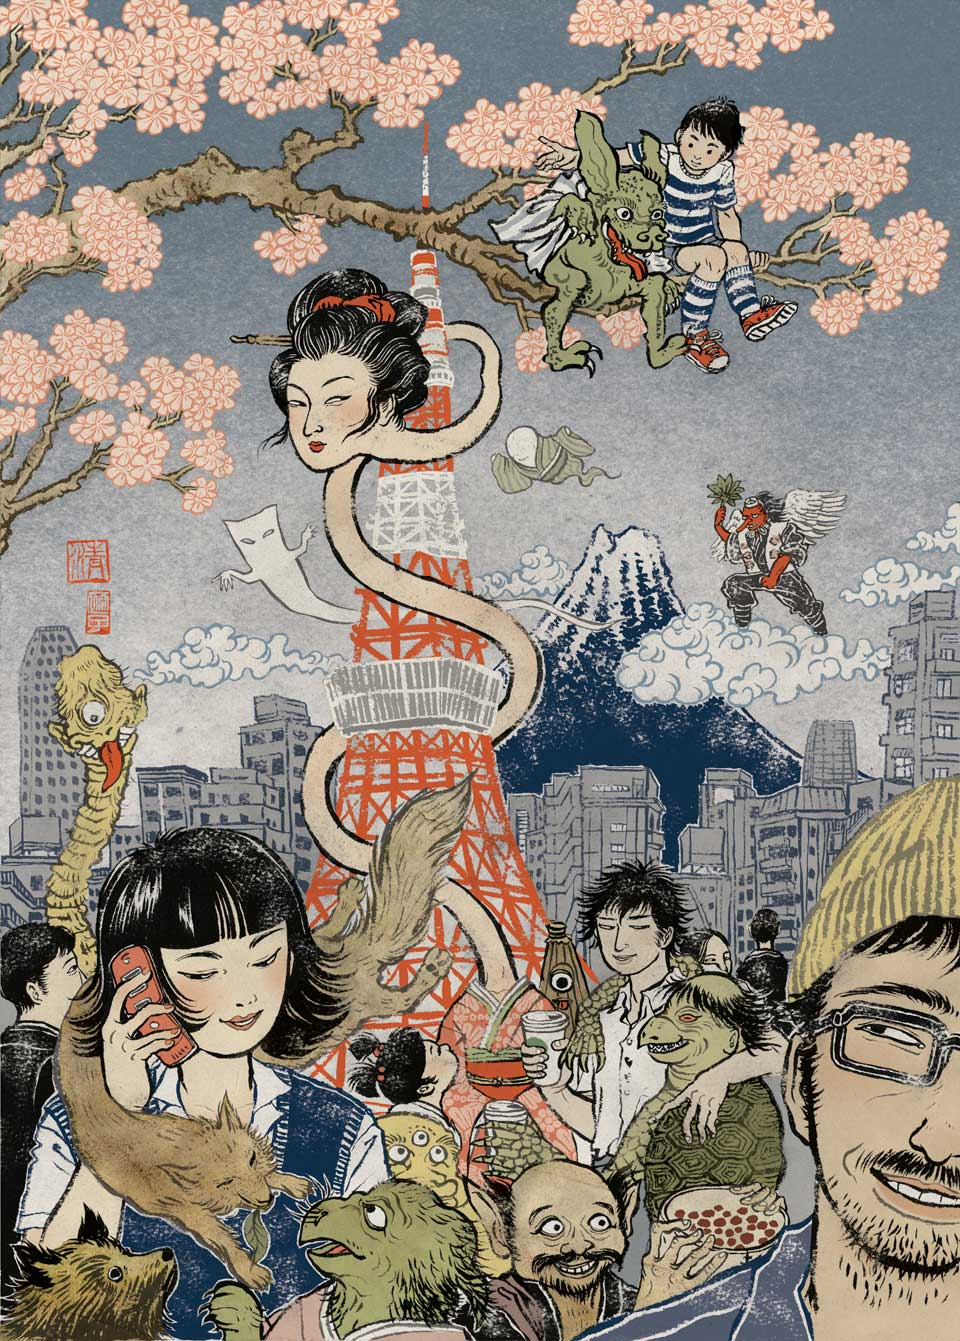 Tokyo illustration by yuko shimizu